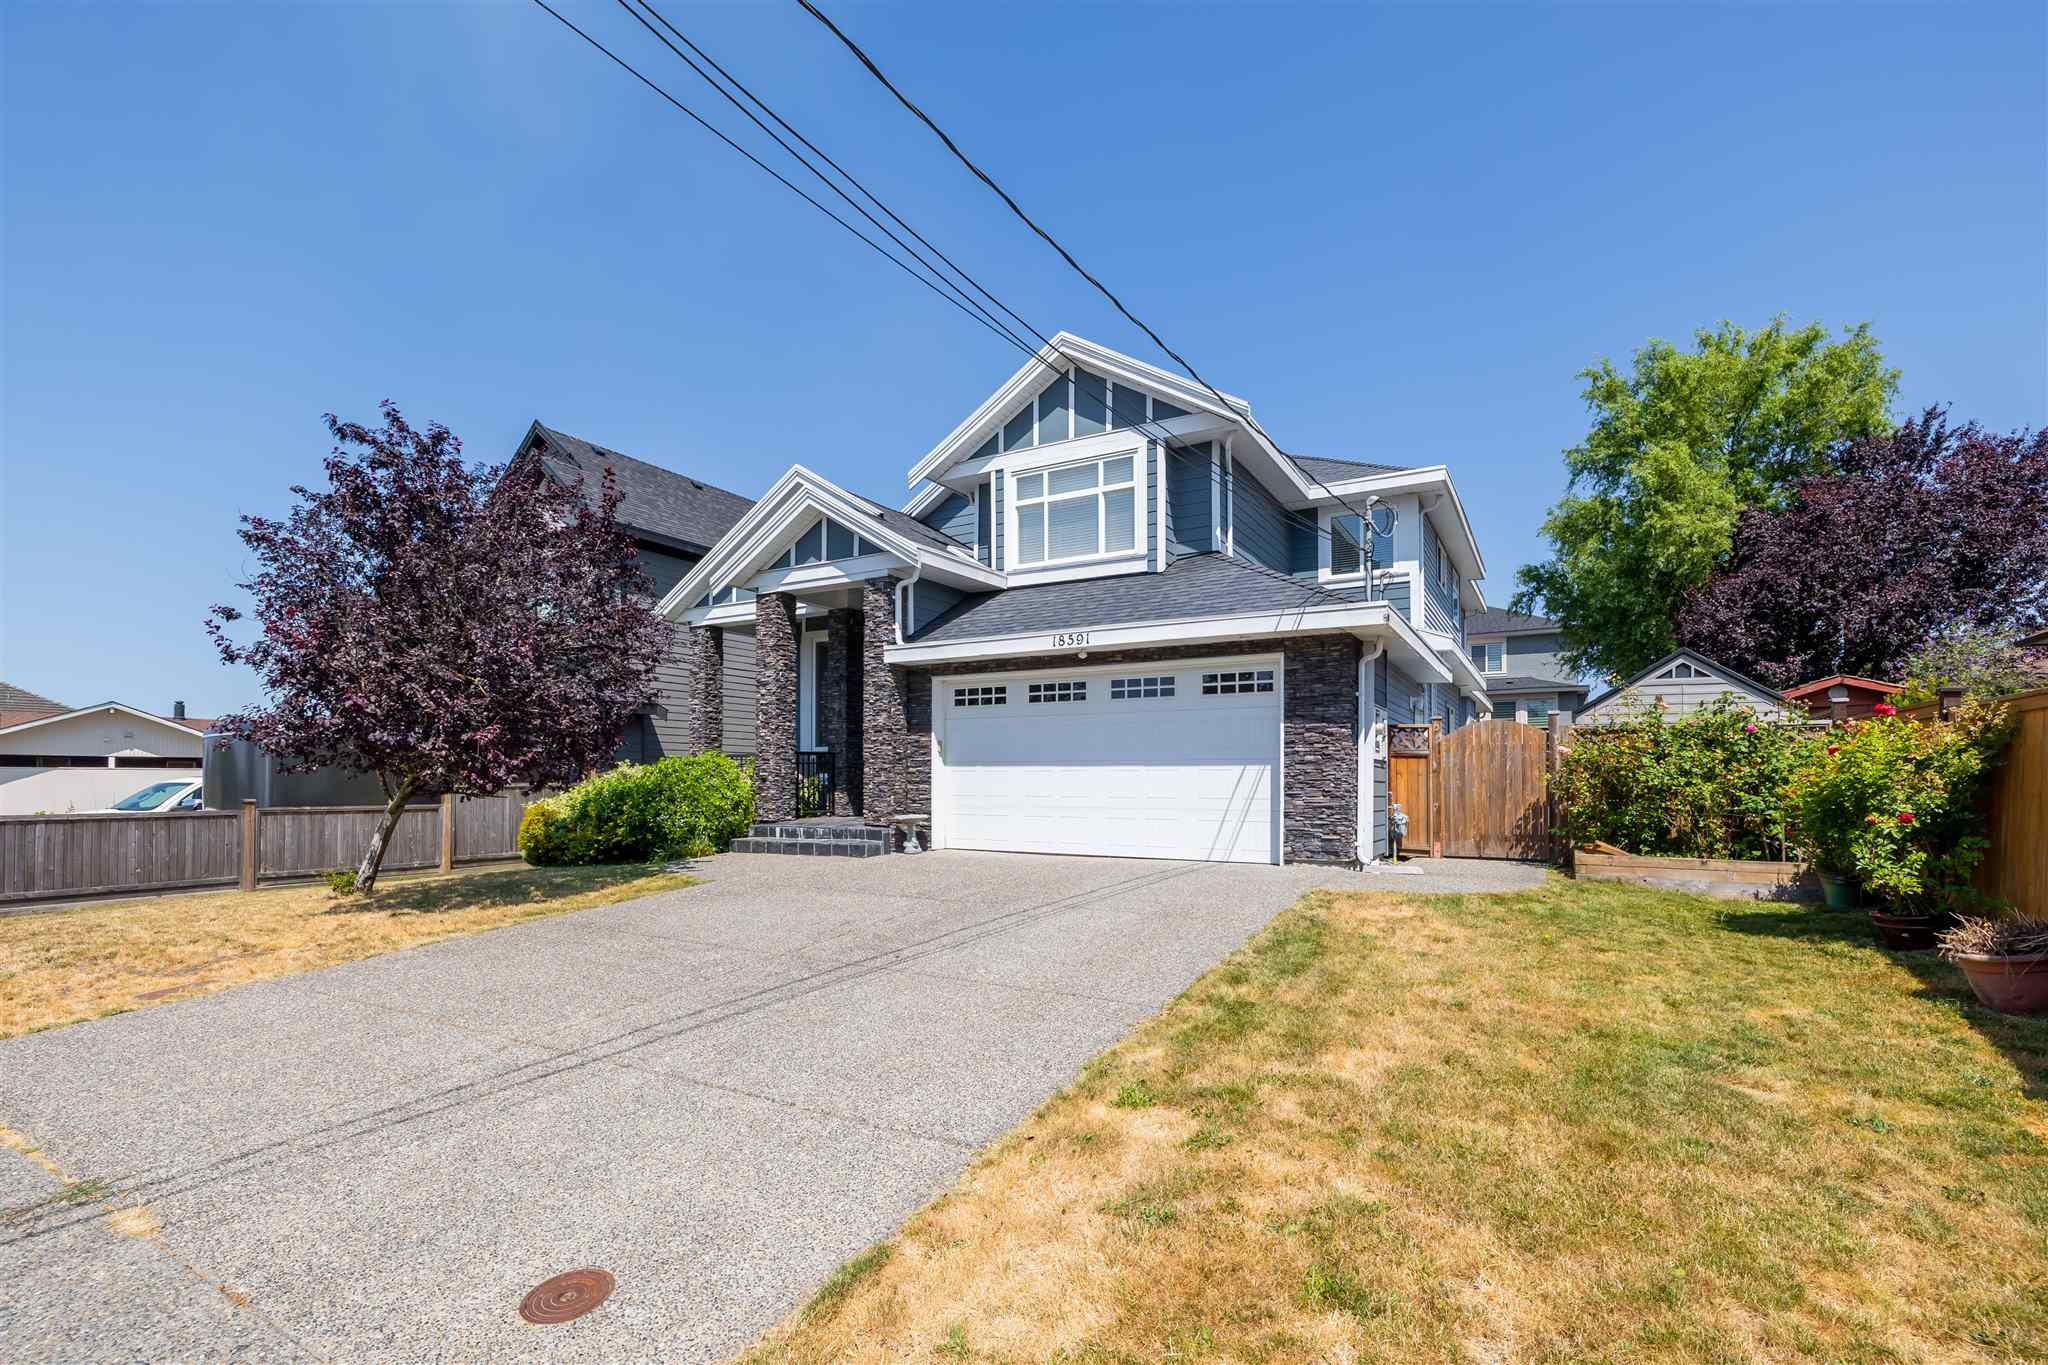 Main Photo: 18591 56 Avenue in Surrey: Cloverdale BC House for sale (Cloverdale)  : MLS®# R2603248